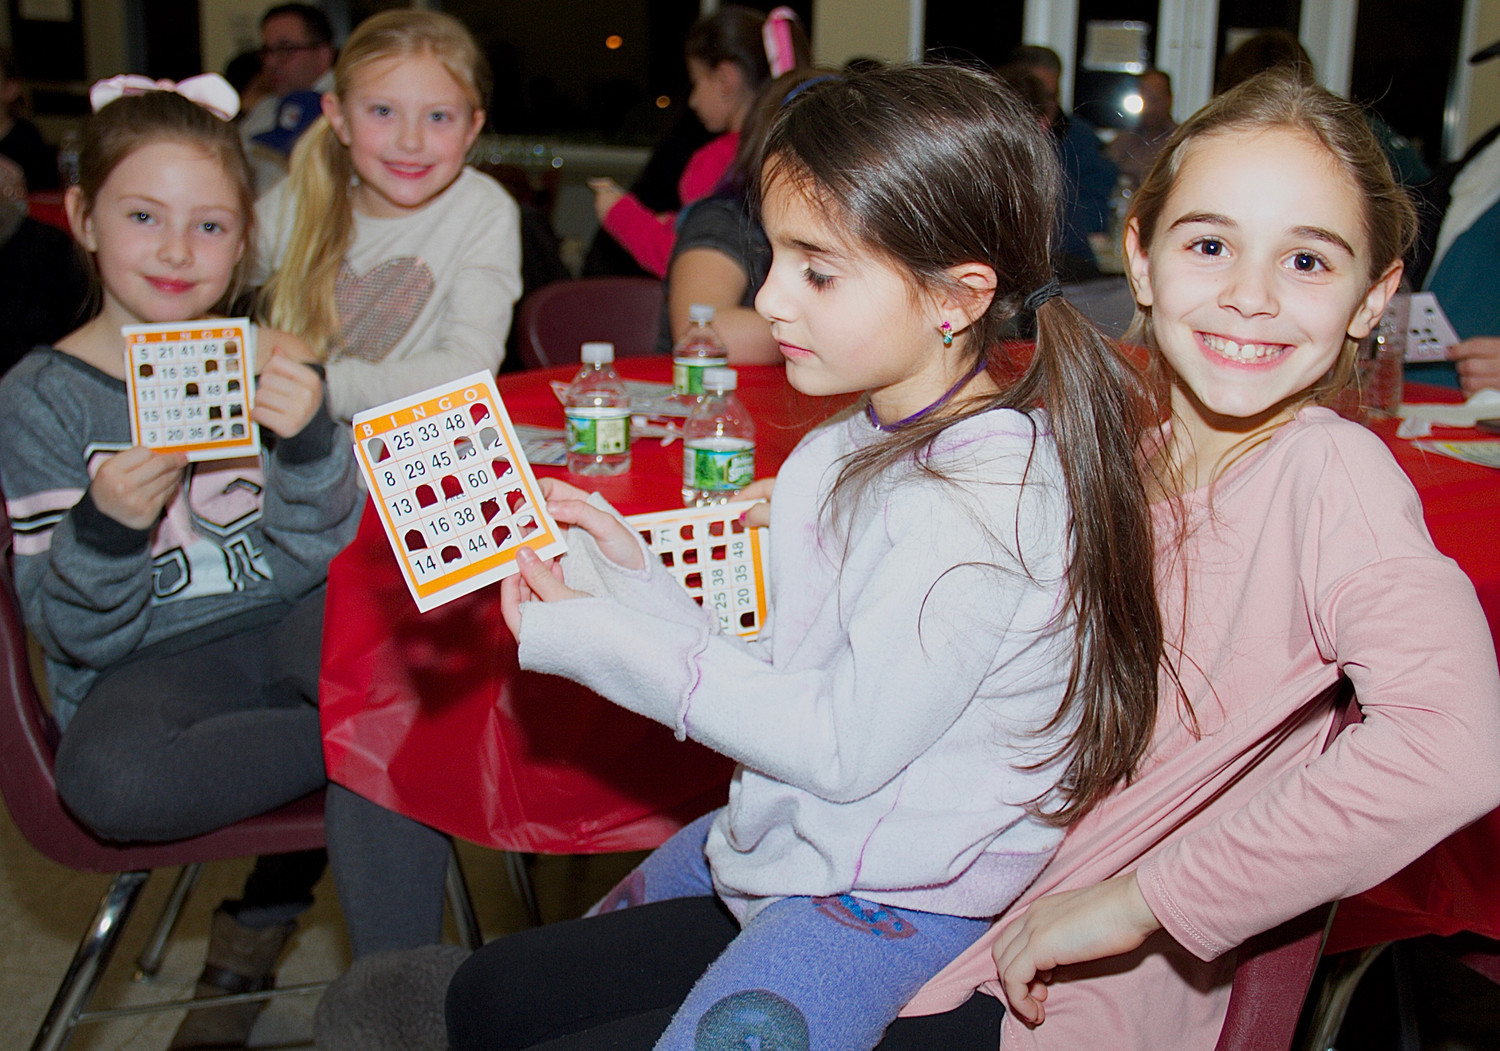 From right: Third graders Manuela Armata, Allessandra Gallo, Evangeline Weinstein and Madison Petersen anxiously awaited to have their Bingo numbers called.